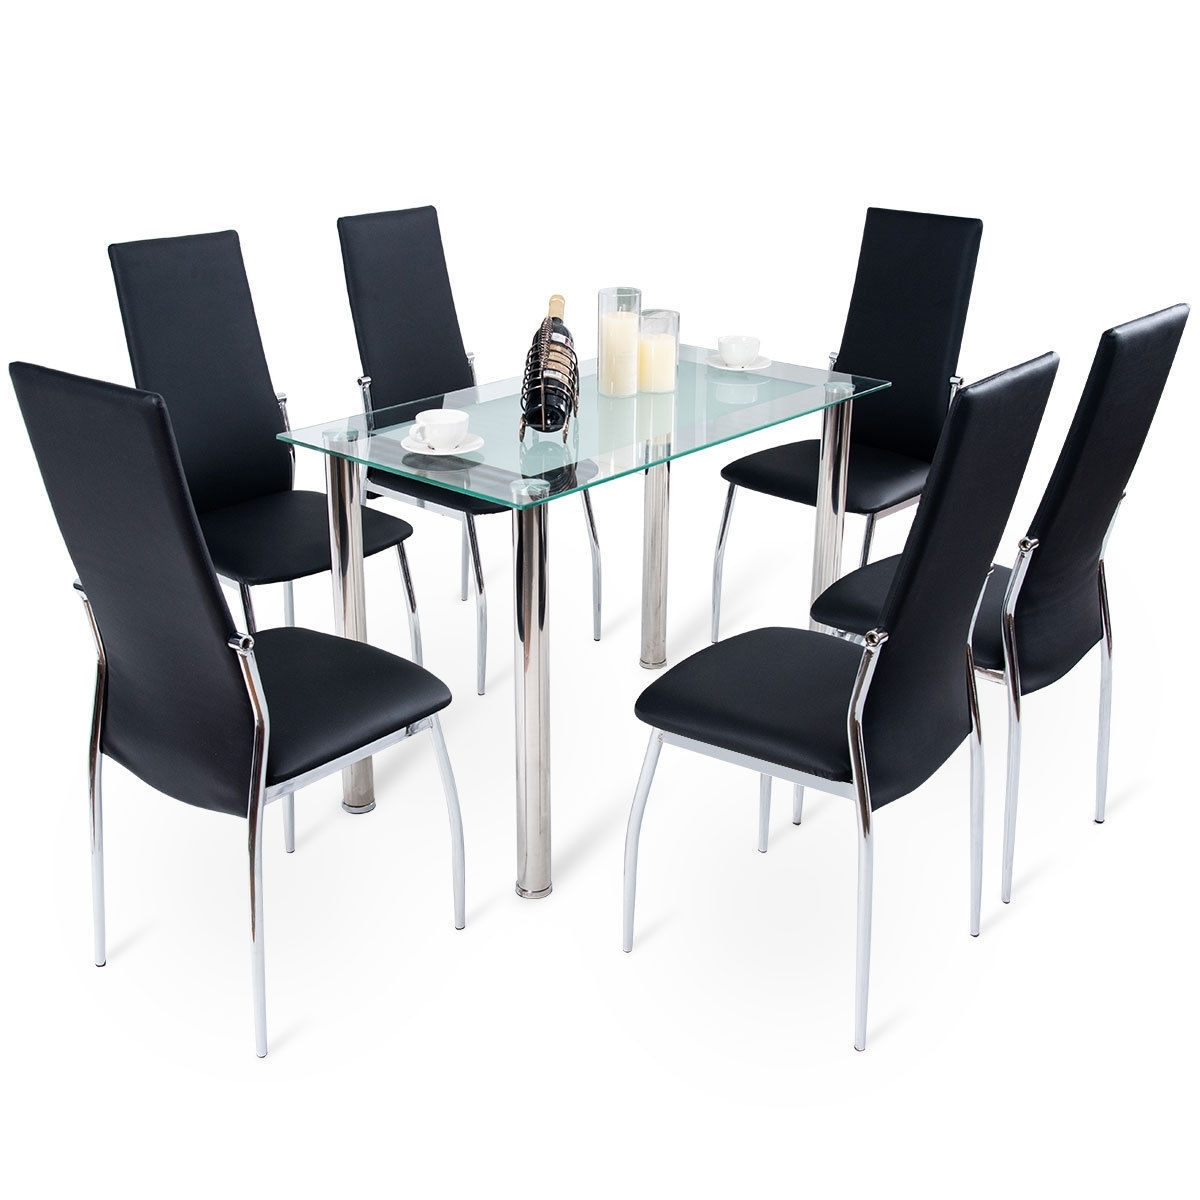 Most Recent Glass Dining Tables With 6 Chairs With Regard To Costway: Costway Modern Glass Dining Table Set Tempered Glass Top (View 16 of 25)